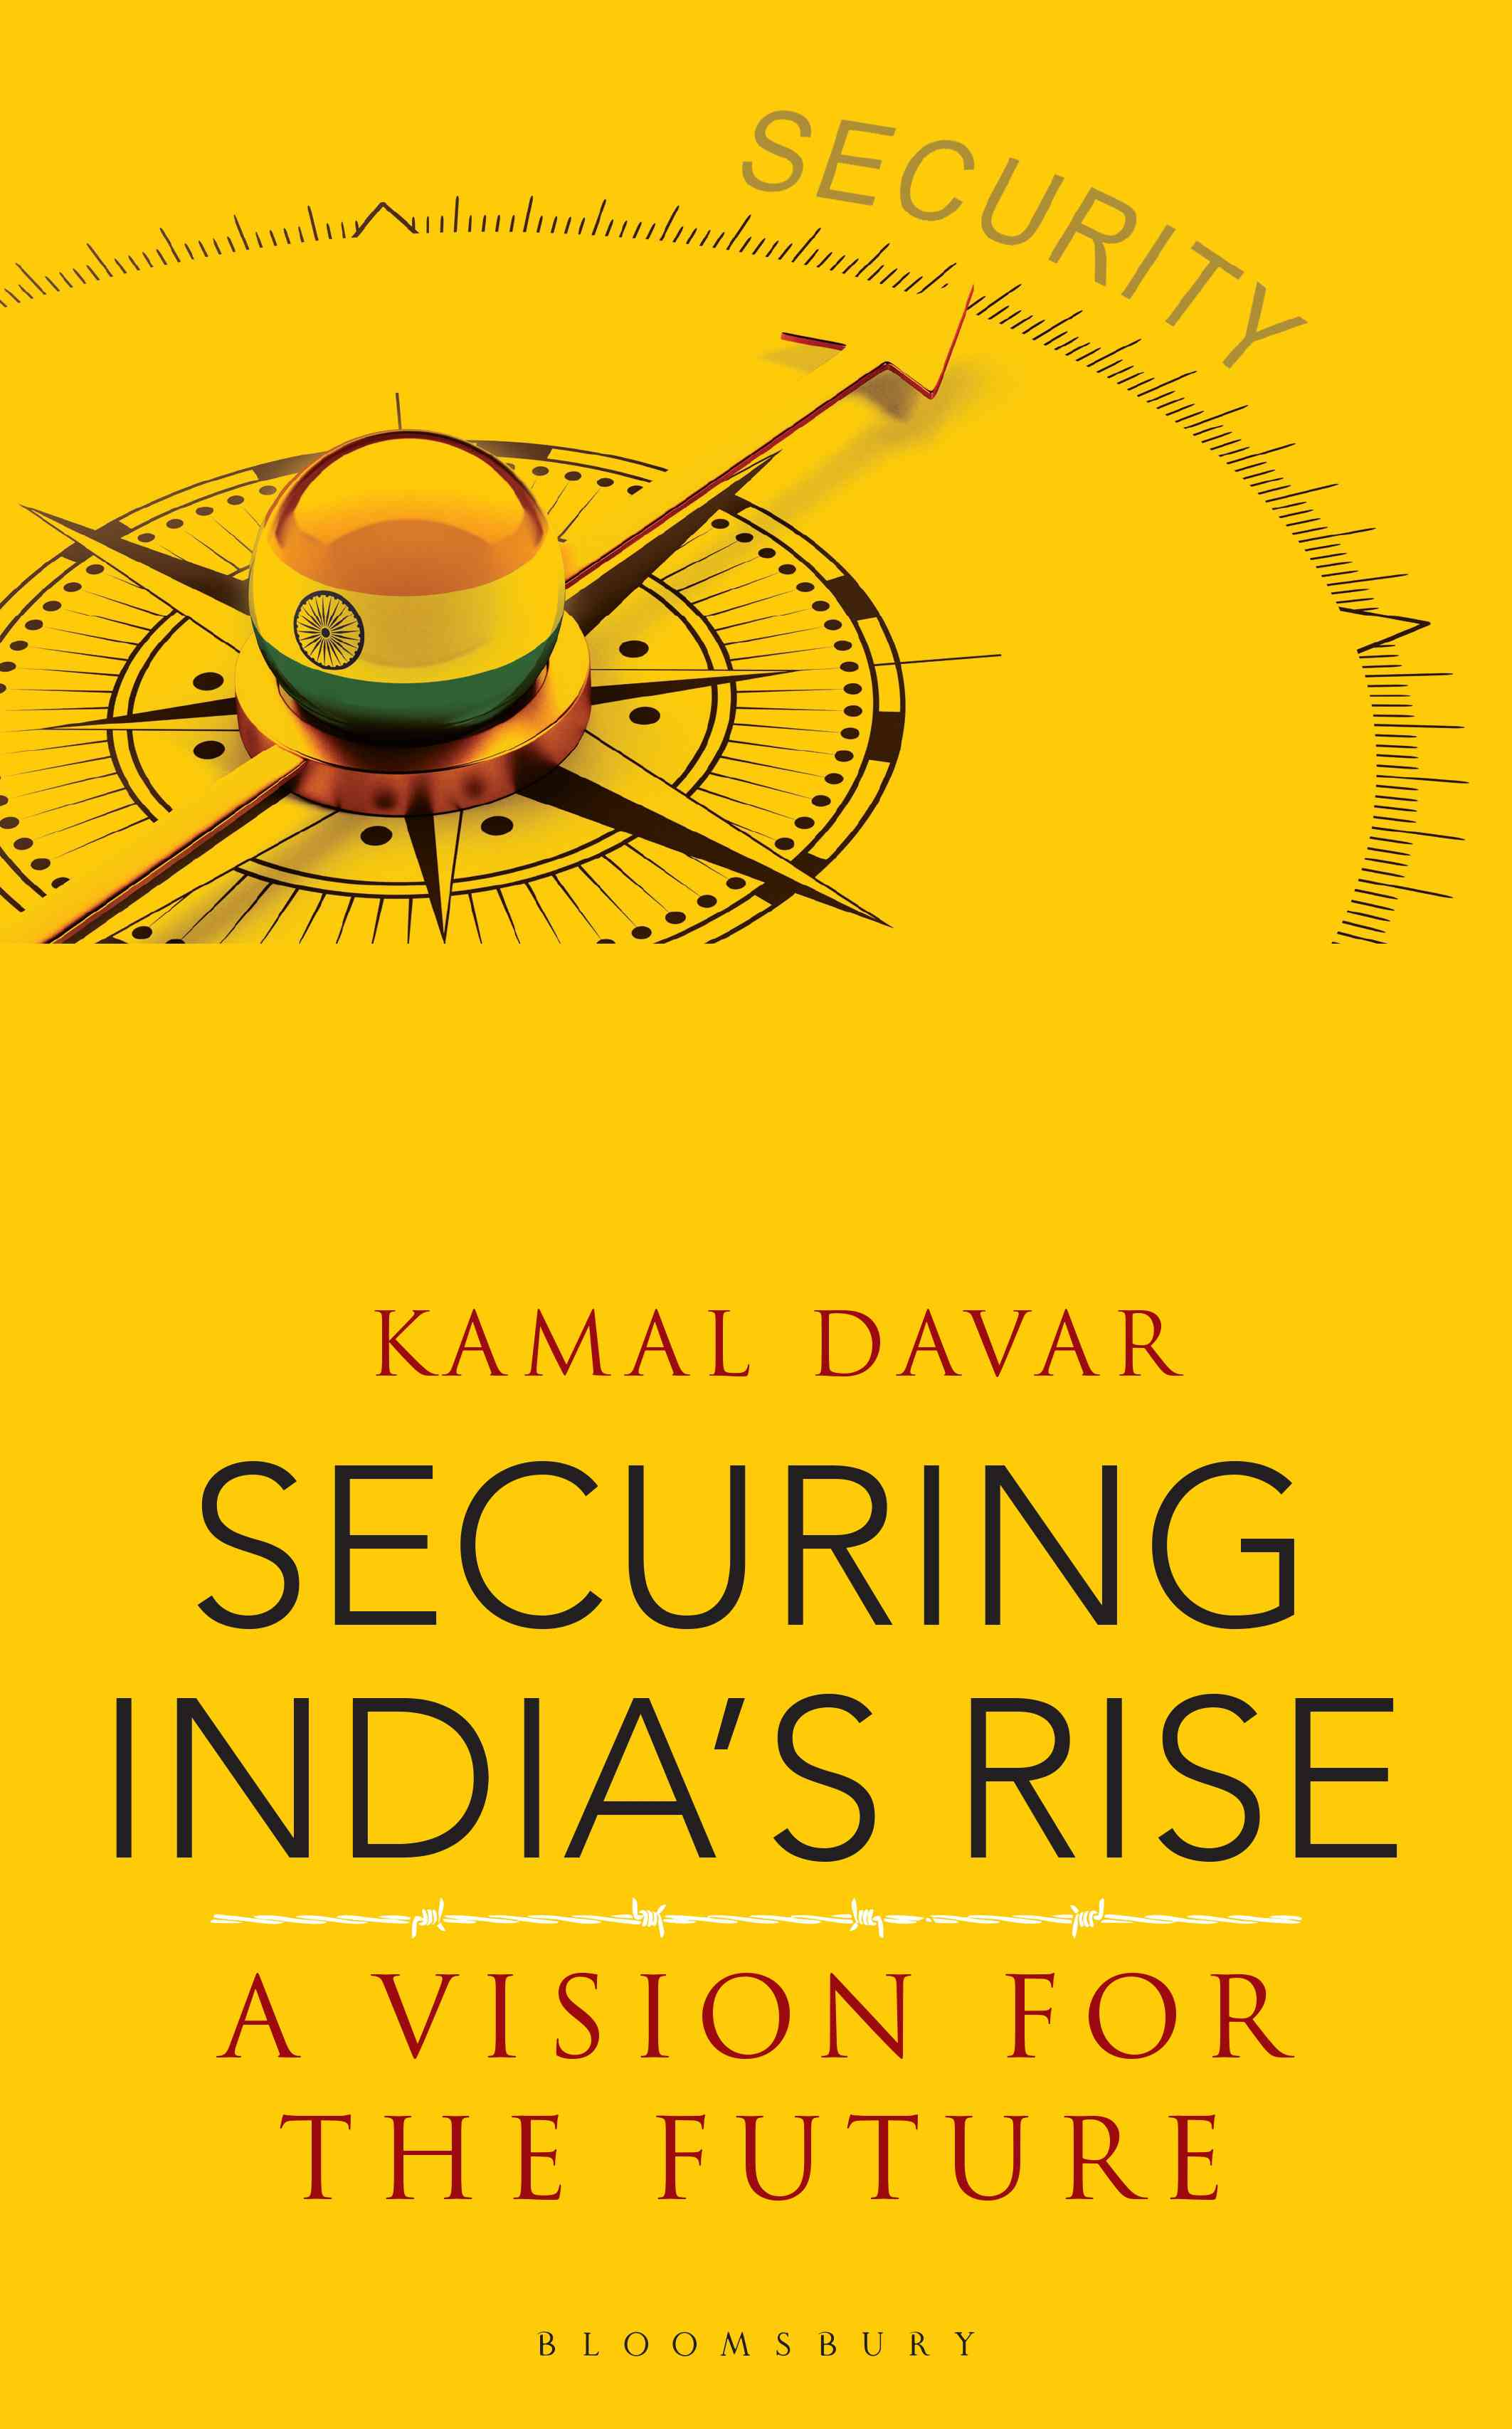 Securing India's Rise: A Vision for the Future